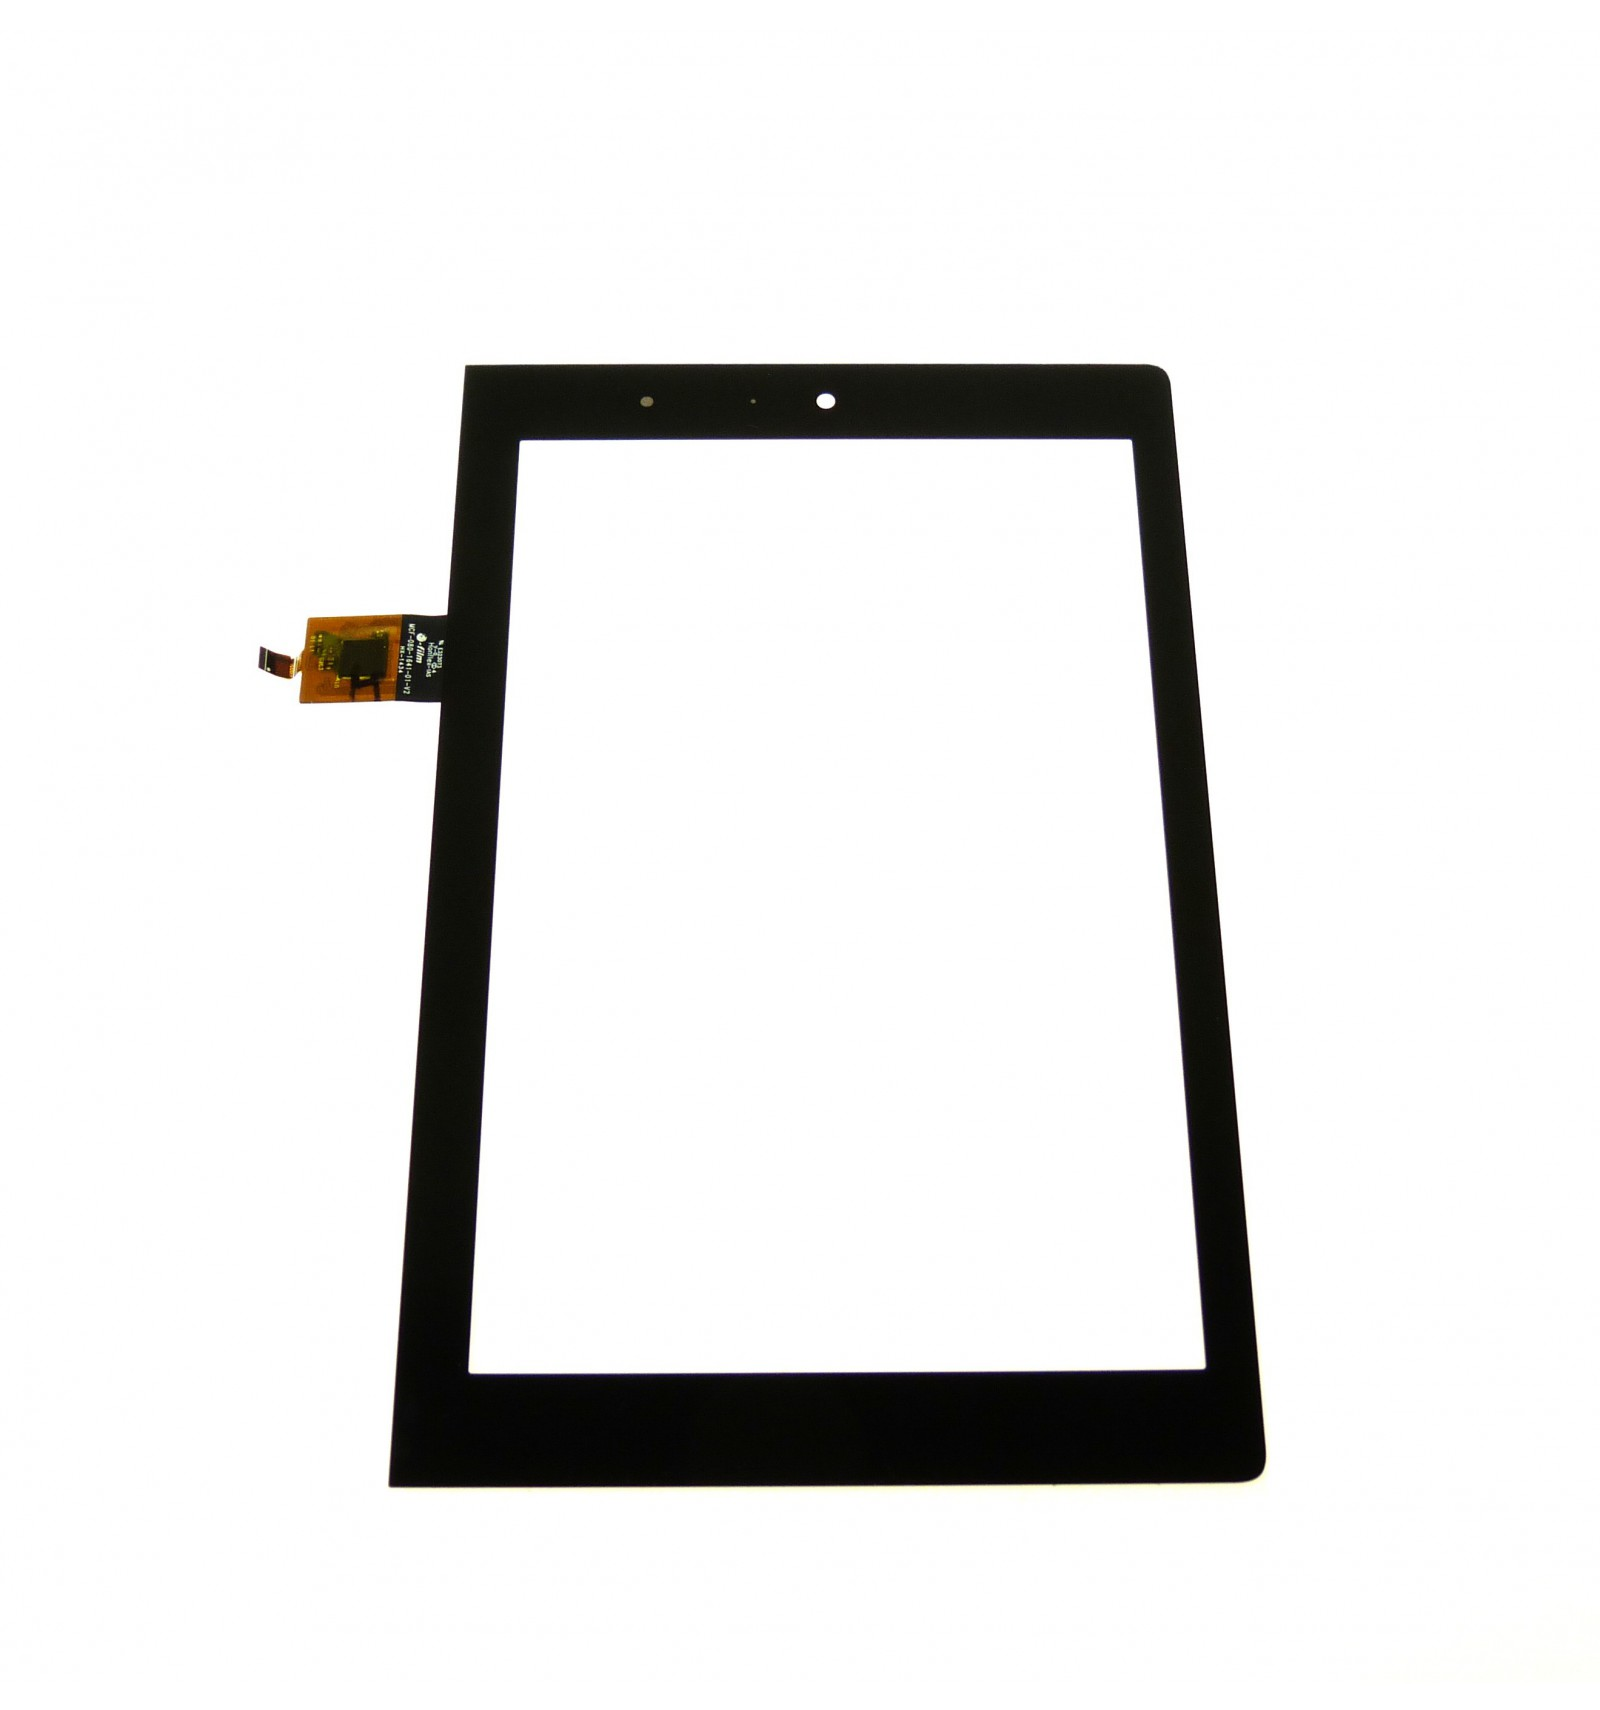 Touch screen black replacement for Lenovo Yoga Tablet 2 8